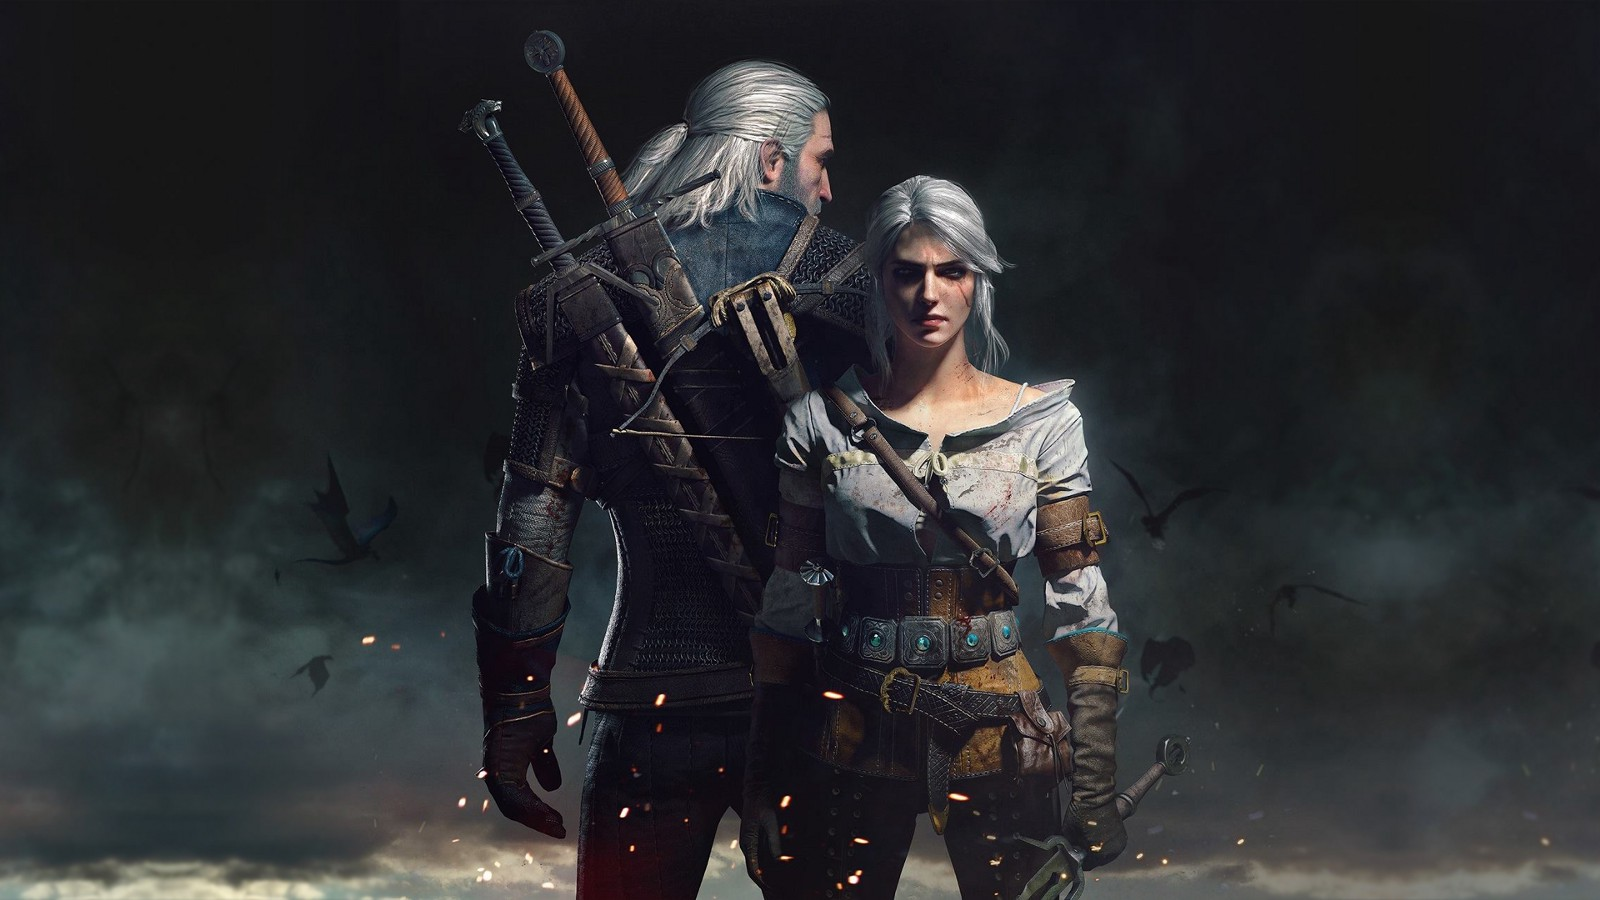 The witcher iii wild hunt daniel cofour medium this essay will contain spoilers lots of it except for the last two subtitles those are discussions of the design of the game thus no story elements are solutioingenieria Image collections